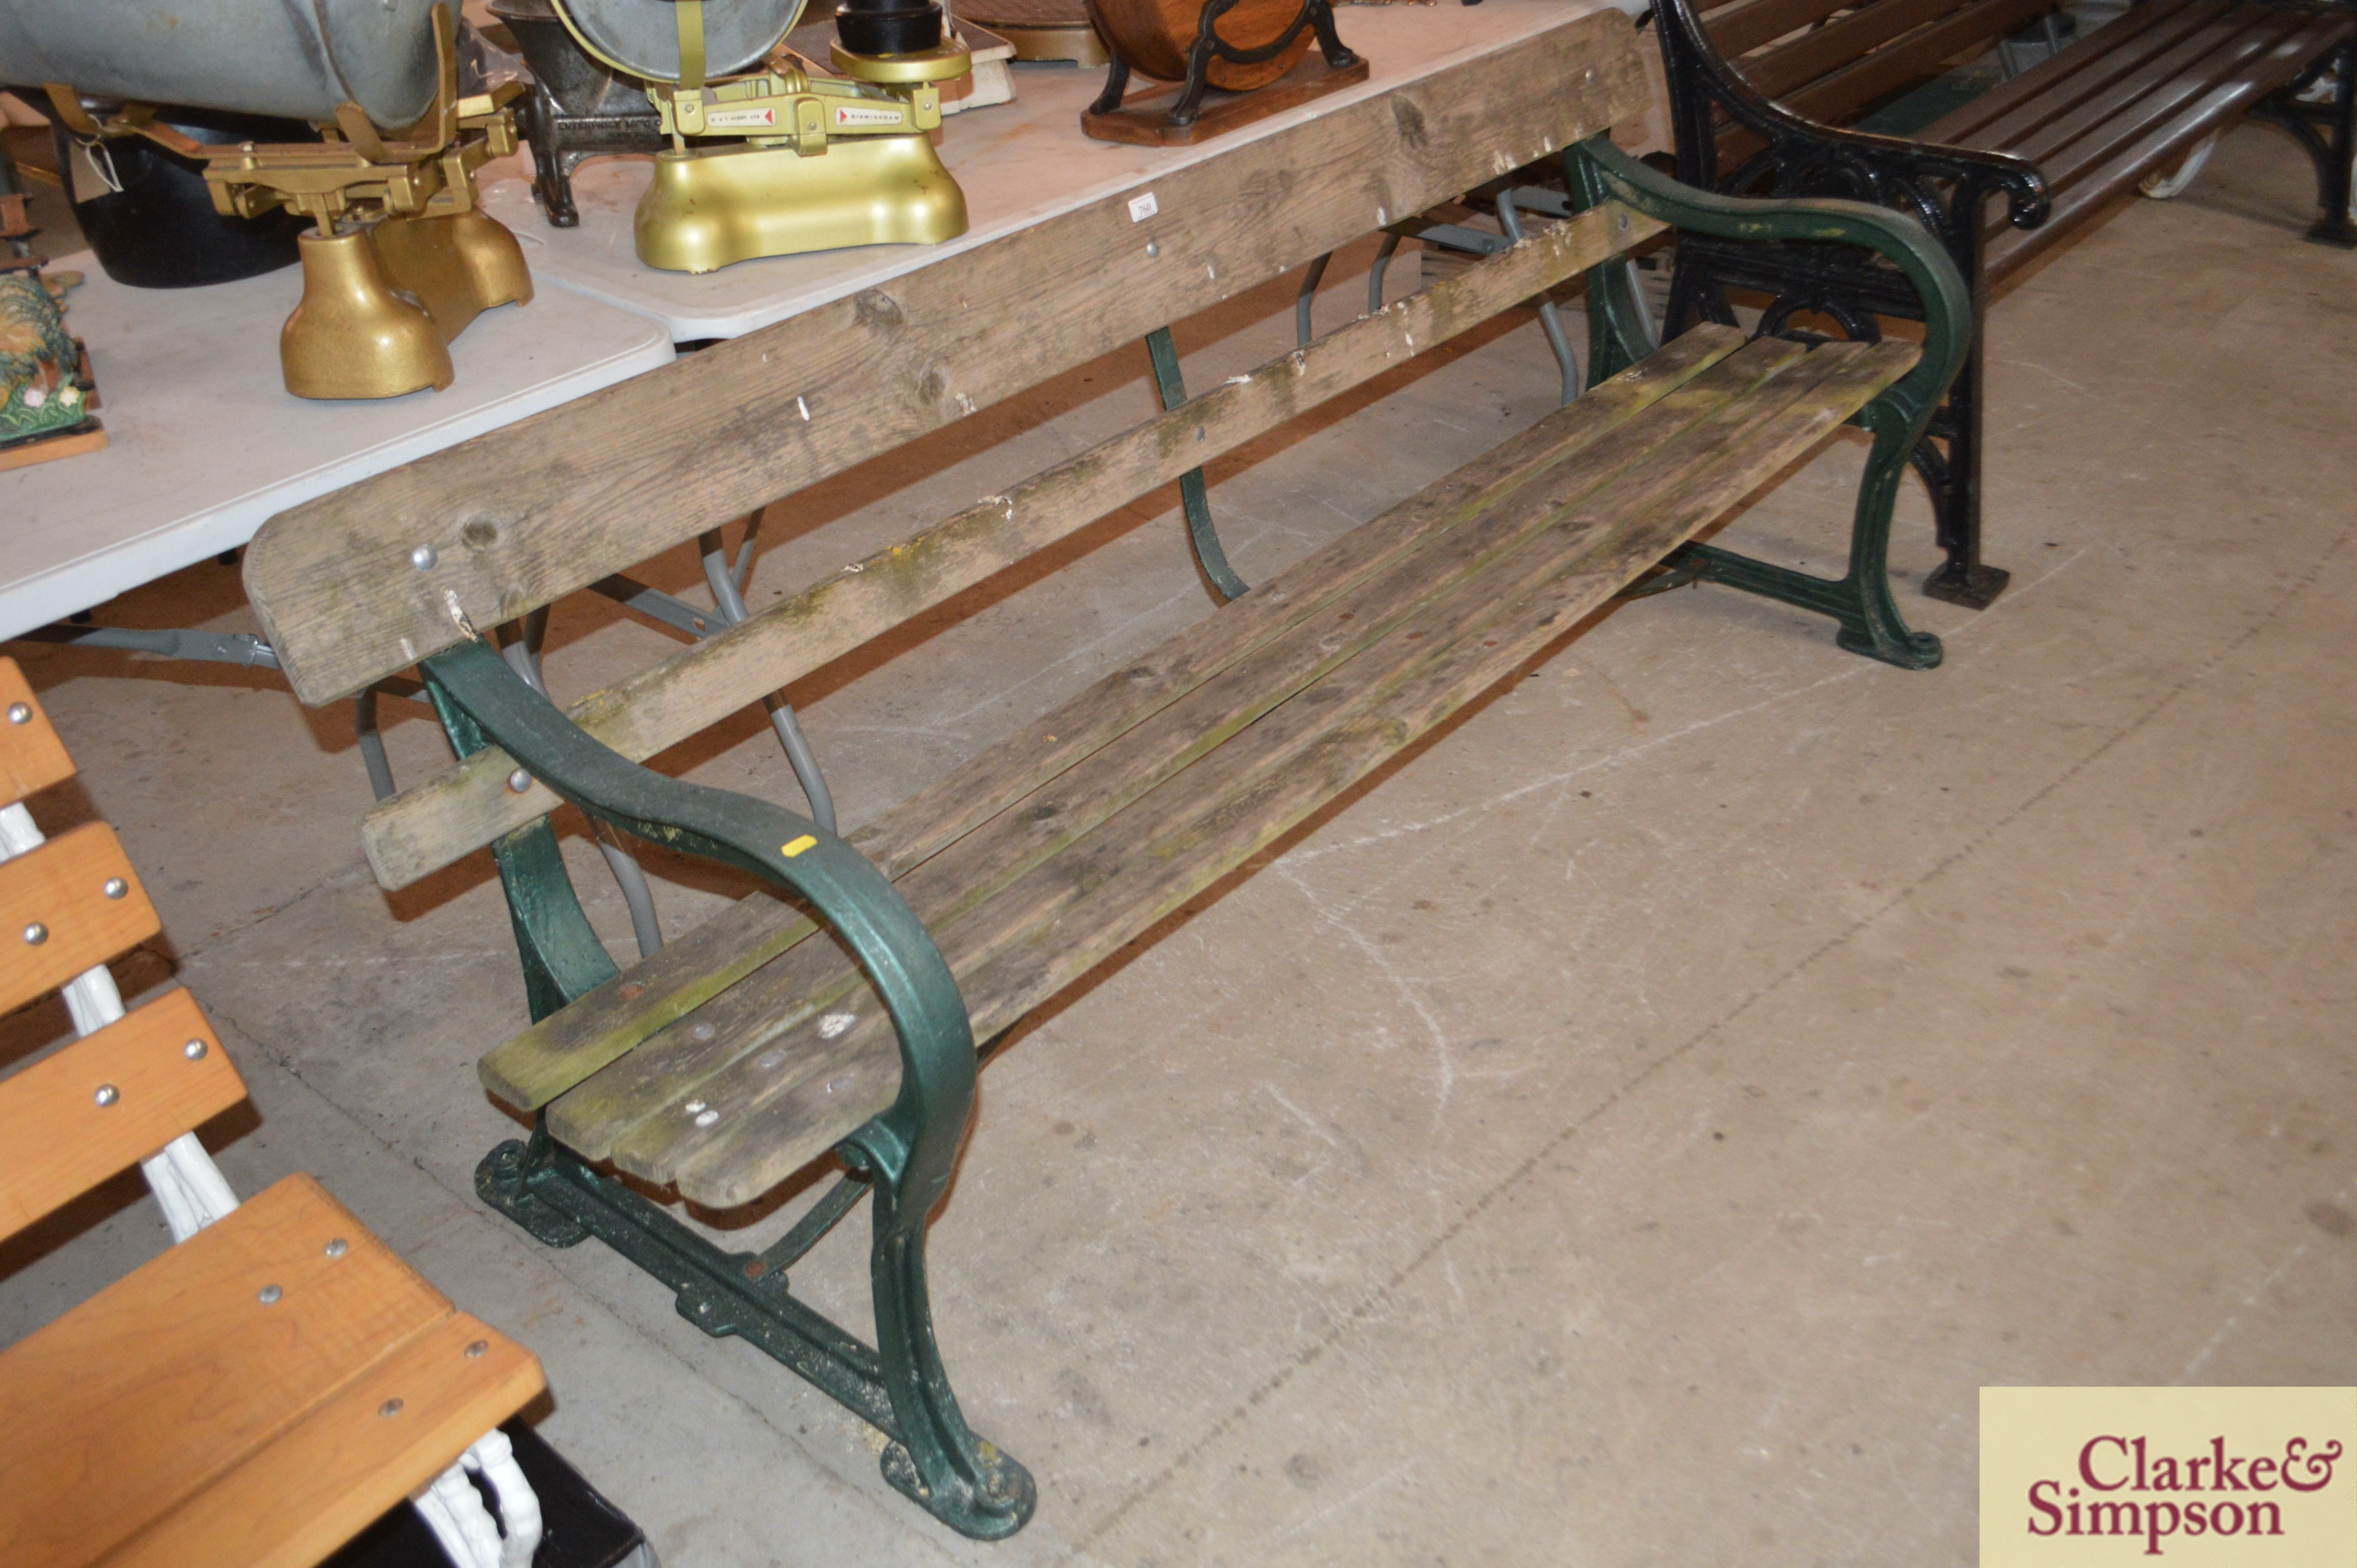 A cast iron and wooden slatted railway type bench